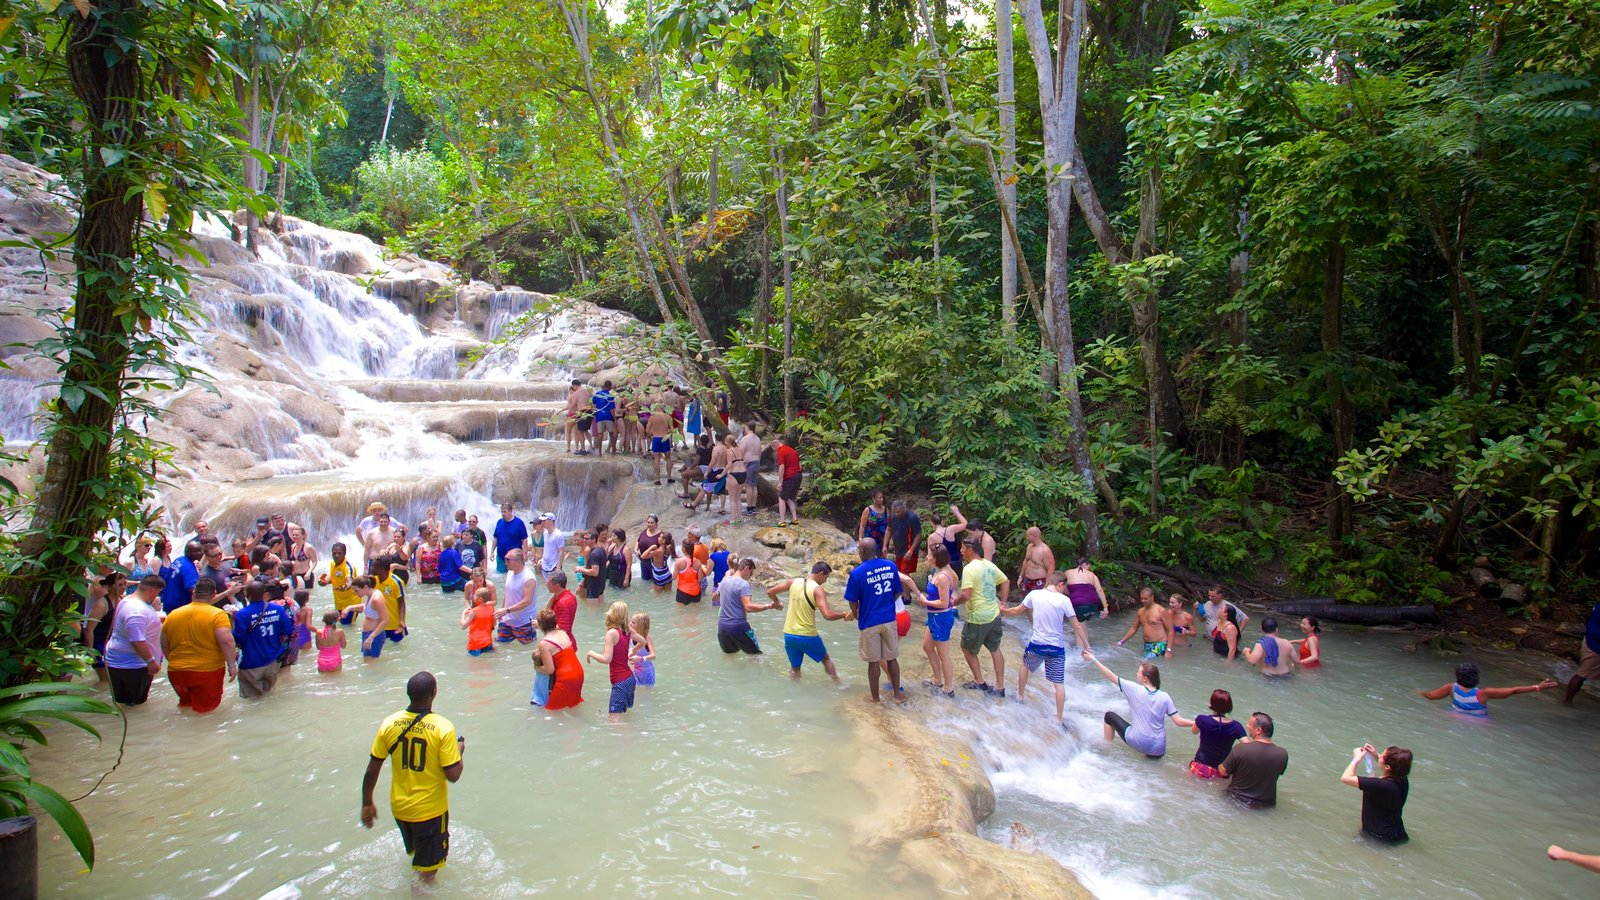 jamaica tourism Jamaica information and tourism - jamaica is best described as an island nation and lies within the caribbean sea, where it is part of the greater antilles archipelago.